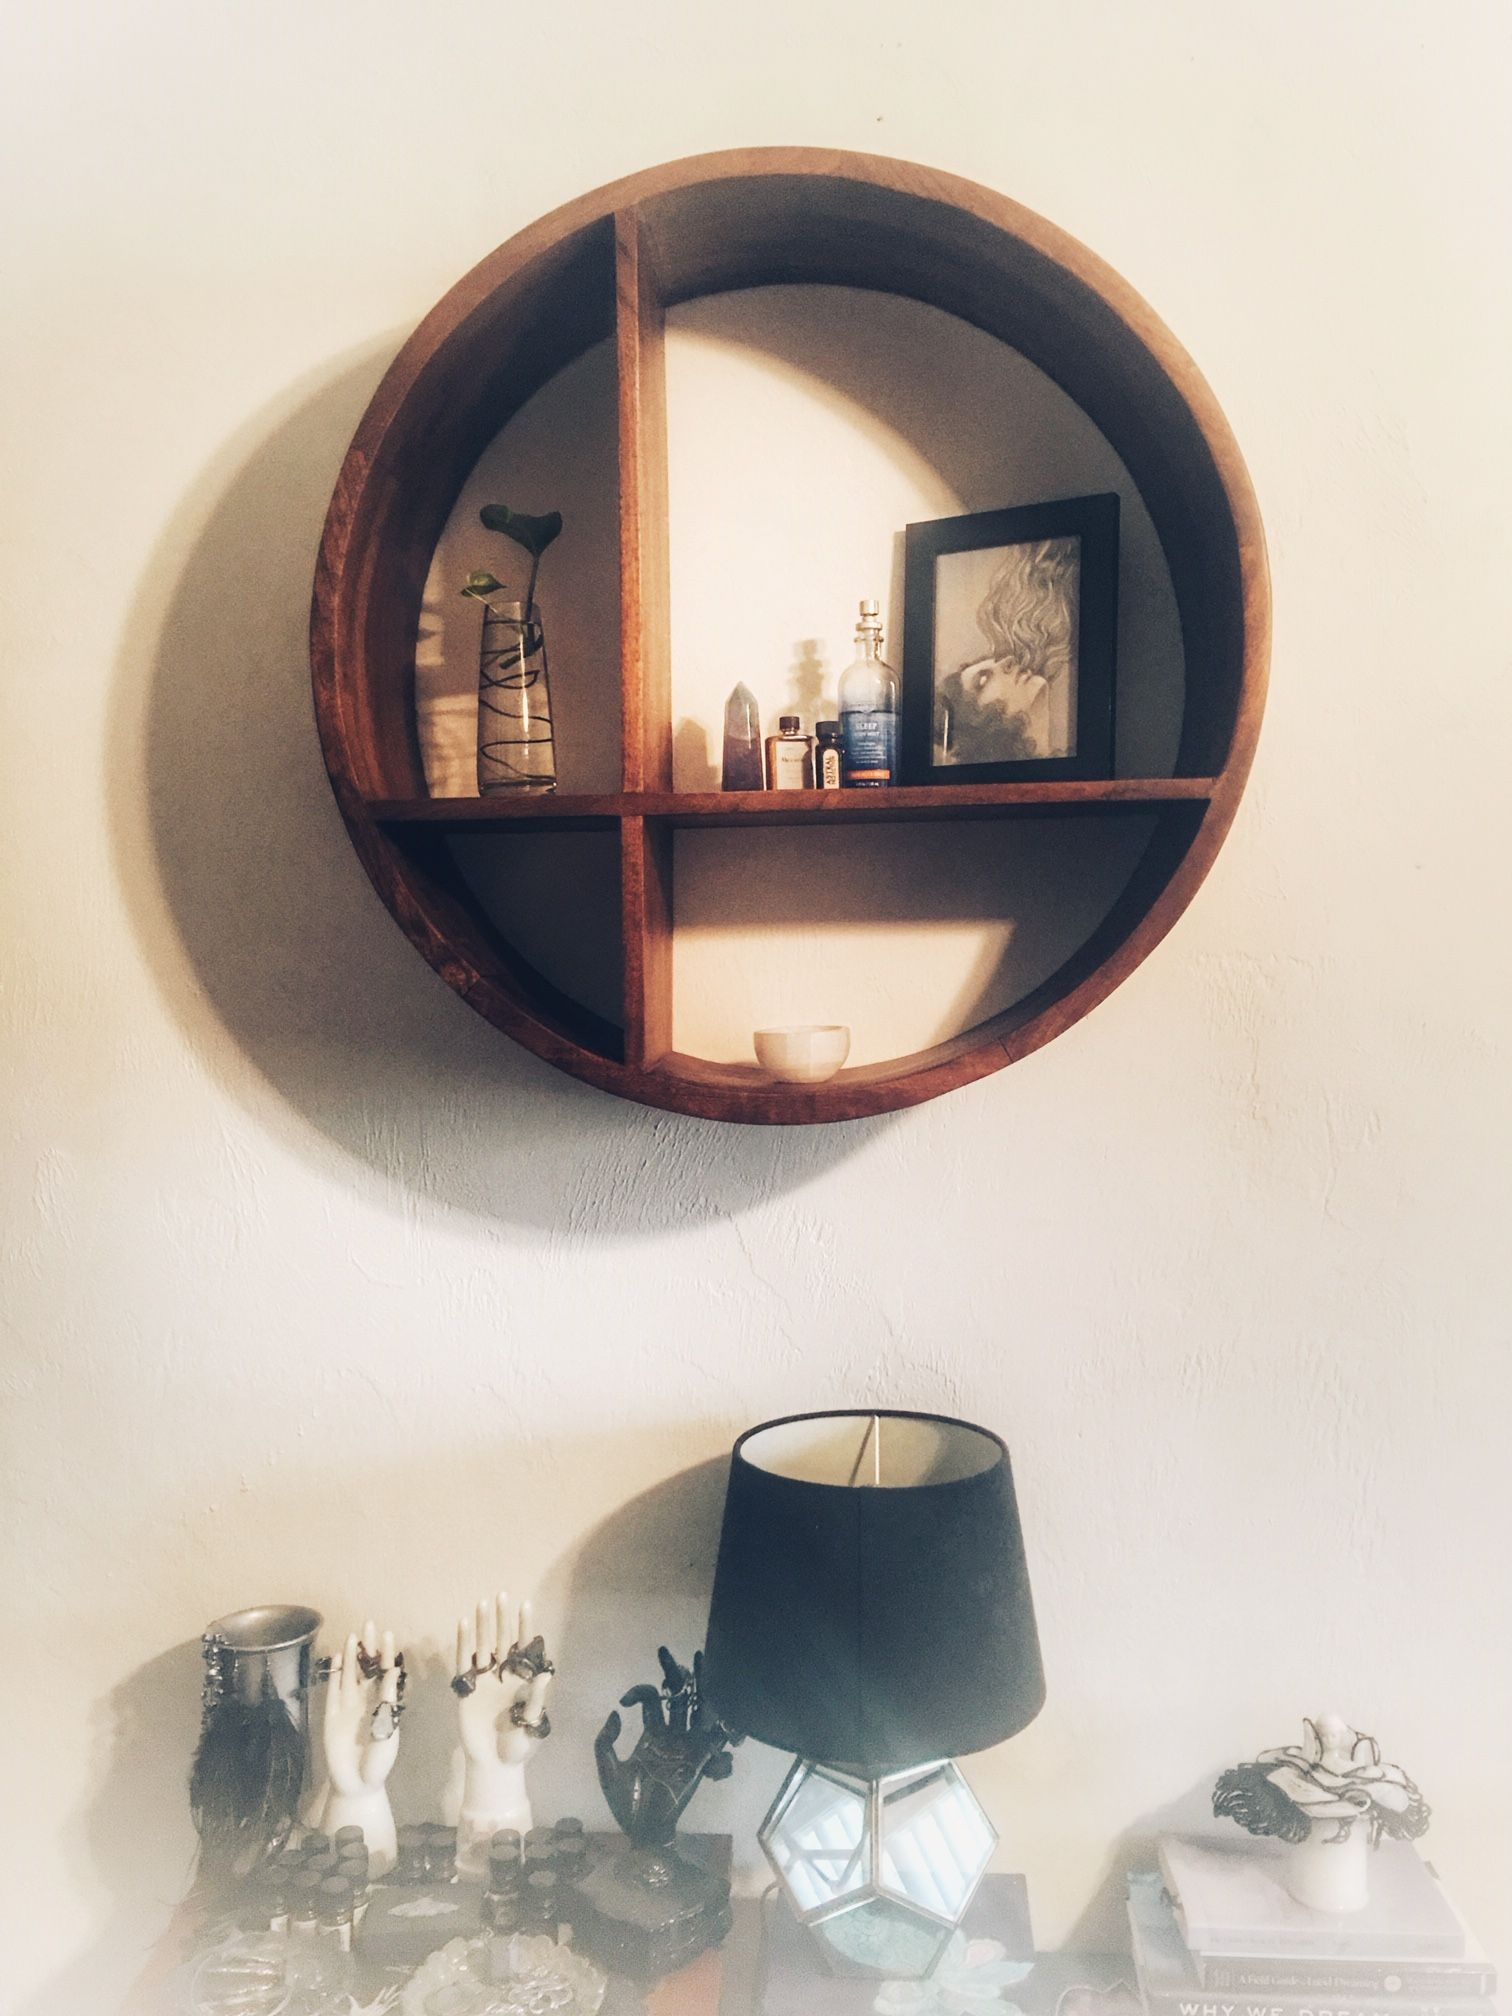 Bedroom shelf 2